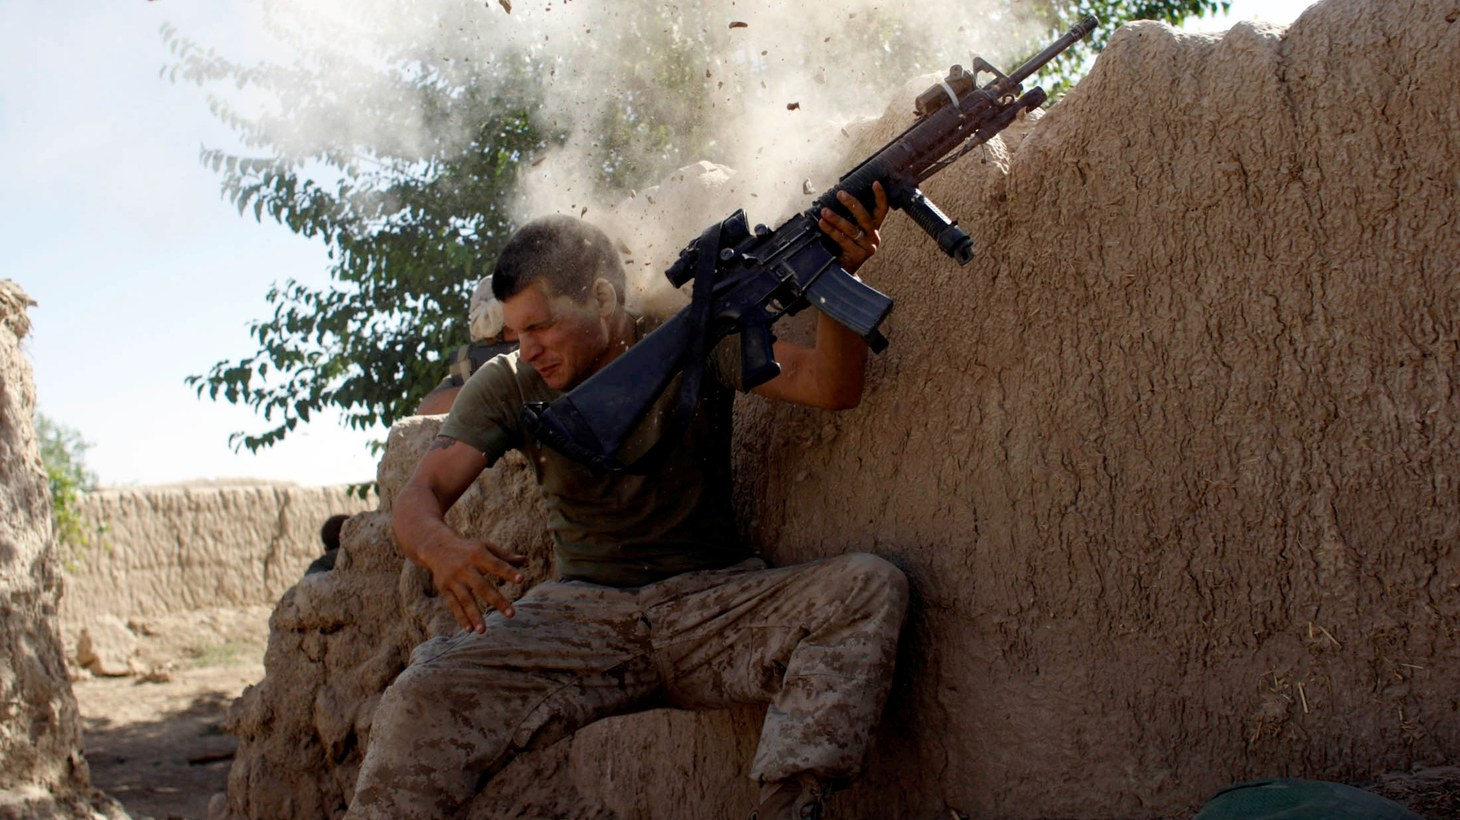 Sgt. William Olas Bee, a U.S. Marine from the 24th Marine Expeditionary Unit, has a close call after Taliban fighters opened fire near Garmser in Helmand Province of Afghanistan May 18, 2008.